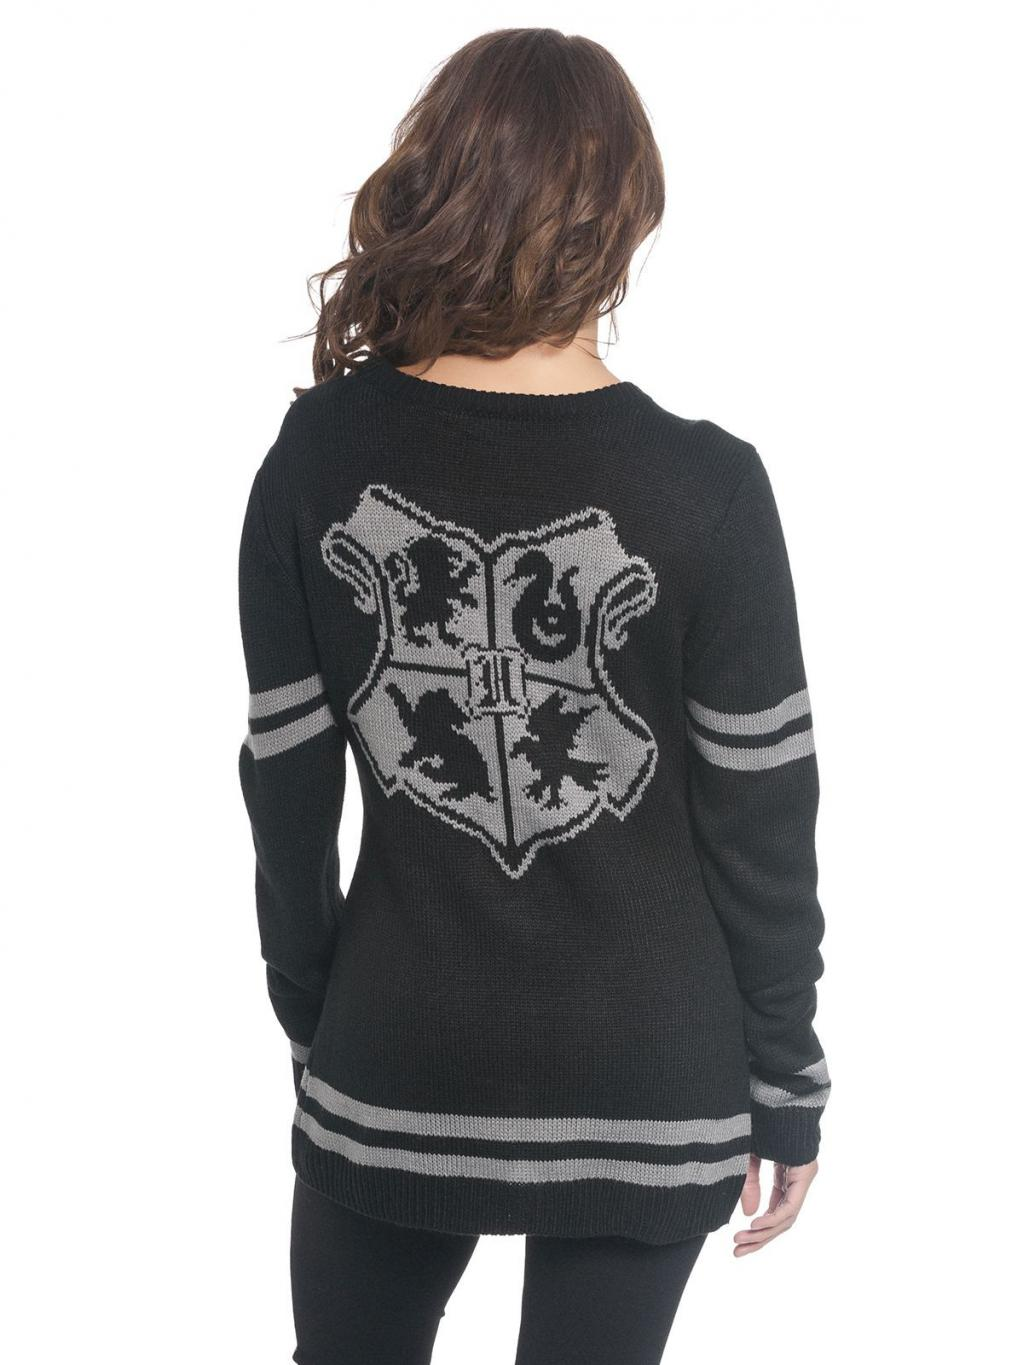 HARRY POTTER - Cardigan - Hogwarts Girl Knit (S)_3